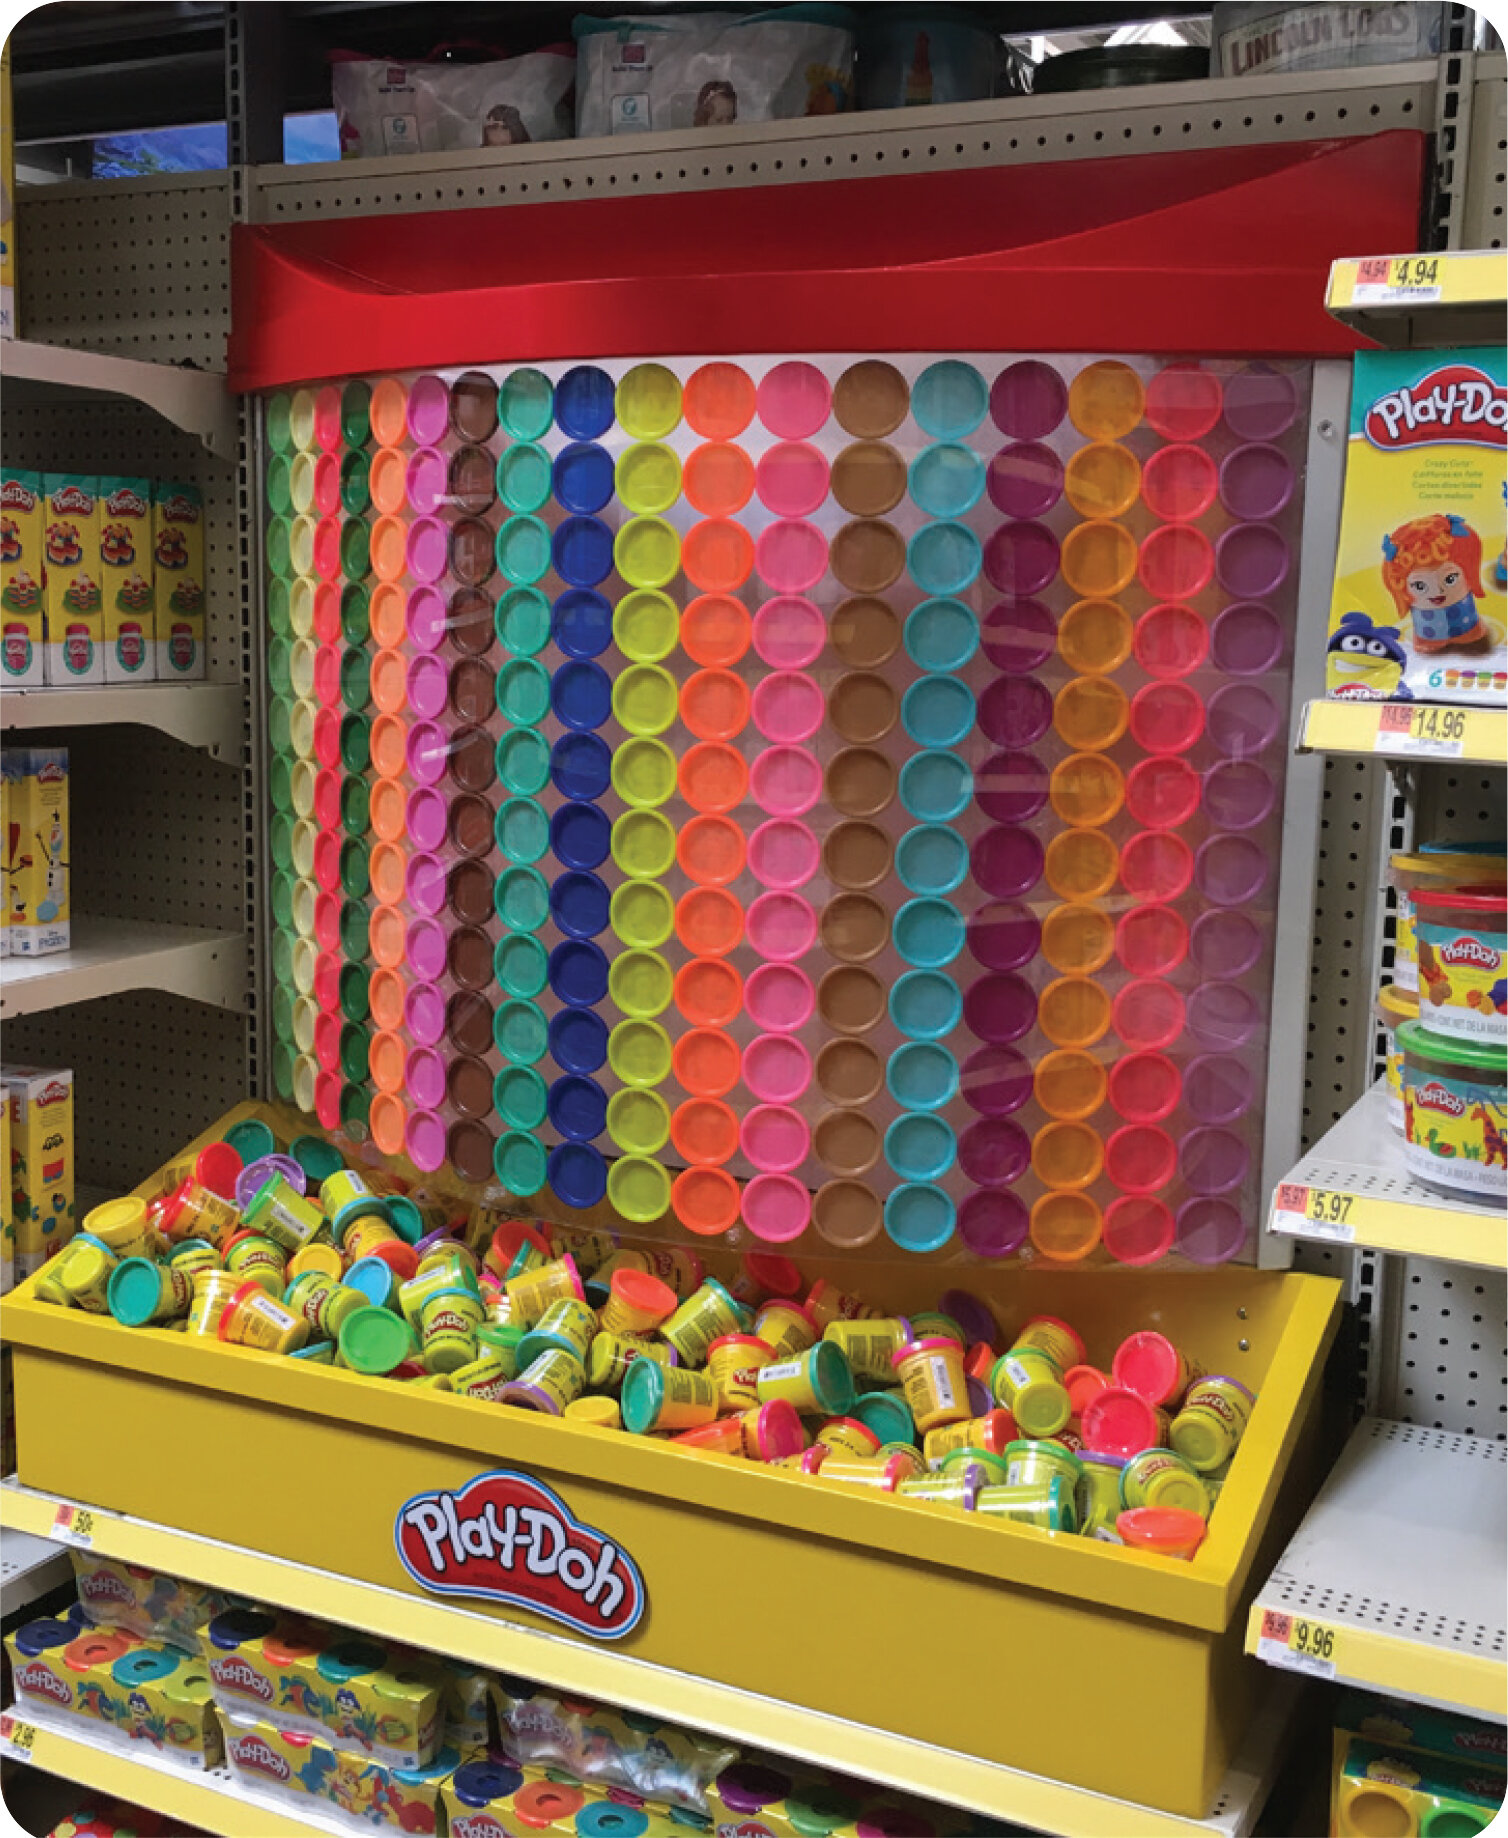 PlayDoh Shelf Merchandiser   a. The Ask – Quickly assist PlayDoh's marketing agency with the design and production of a display prototype after they received a version from a different supplier that did not meet the creative vision. The display was needed for a critical buyer meeting.  b. The Approach – Using the original buyer-approved rendering, create a permanent dump-bin shelf unit featuring lids from the PlayDoh canisters to draw attention to the display in-aisle.  c. The Results – Designed, engineered and produced a limited production quantity for a regional test based on buyer approval from the display review. The buyer was so impressed with the quality of the display and how closely it matched the approved rendering that she shared it across her merchant organization.